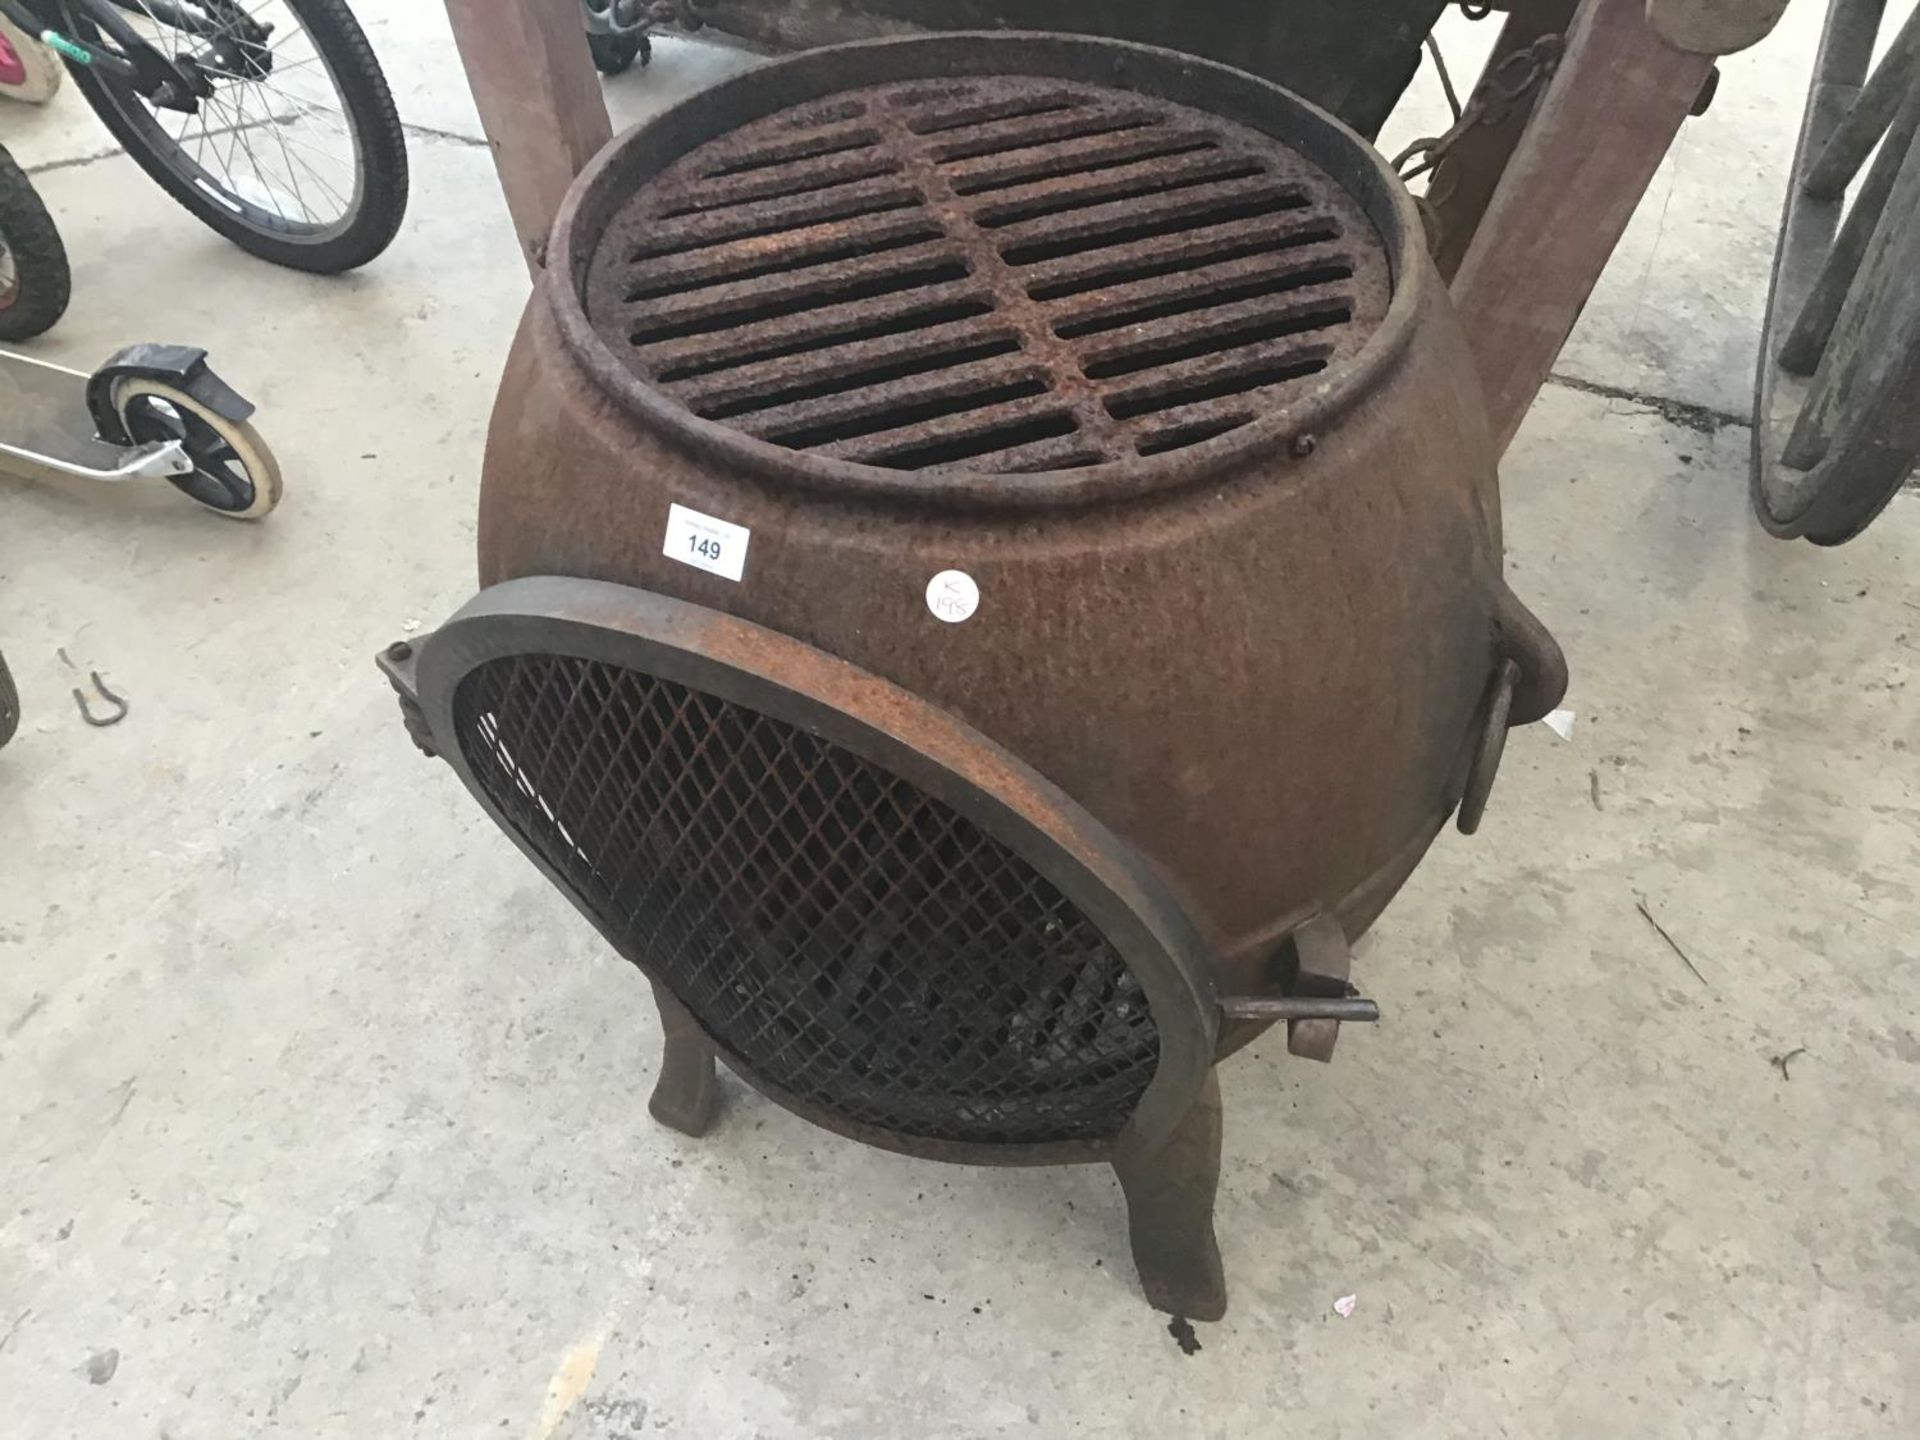 Lot 149 - A CAST IRON BBQ/GRILL/PATIO HEATER